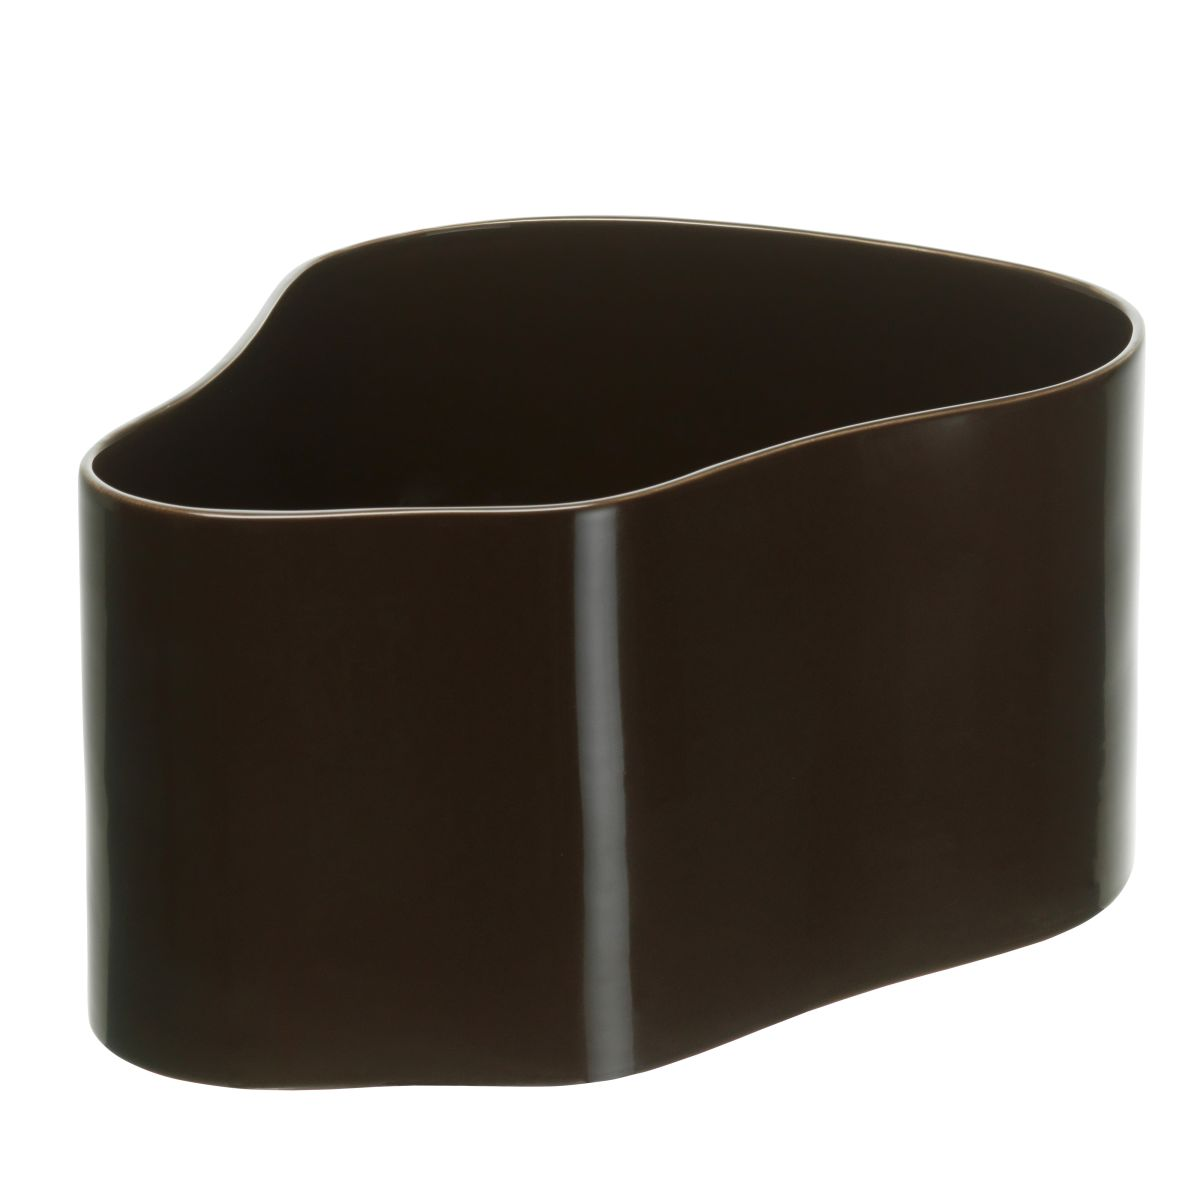 Plant pot shape A, size L, Dark Brown gloss_F